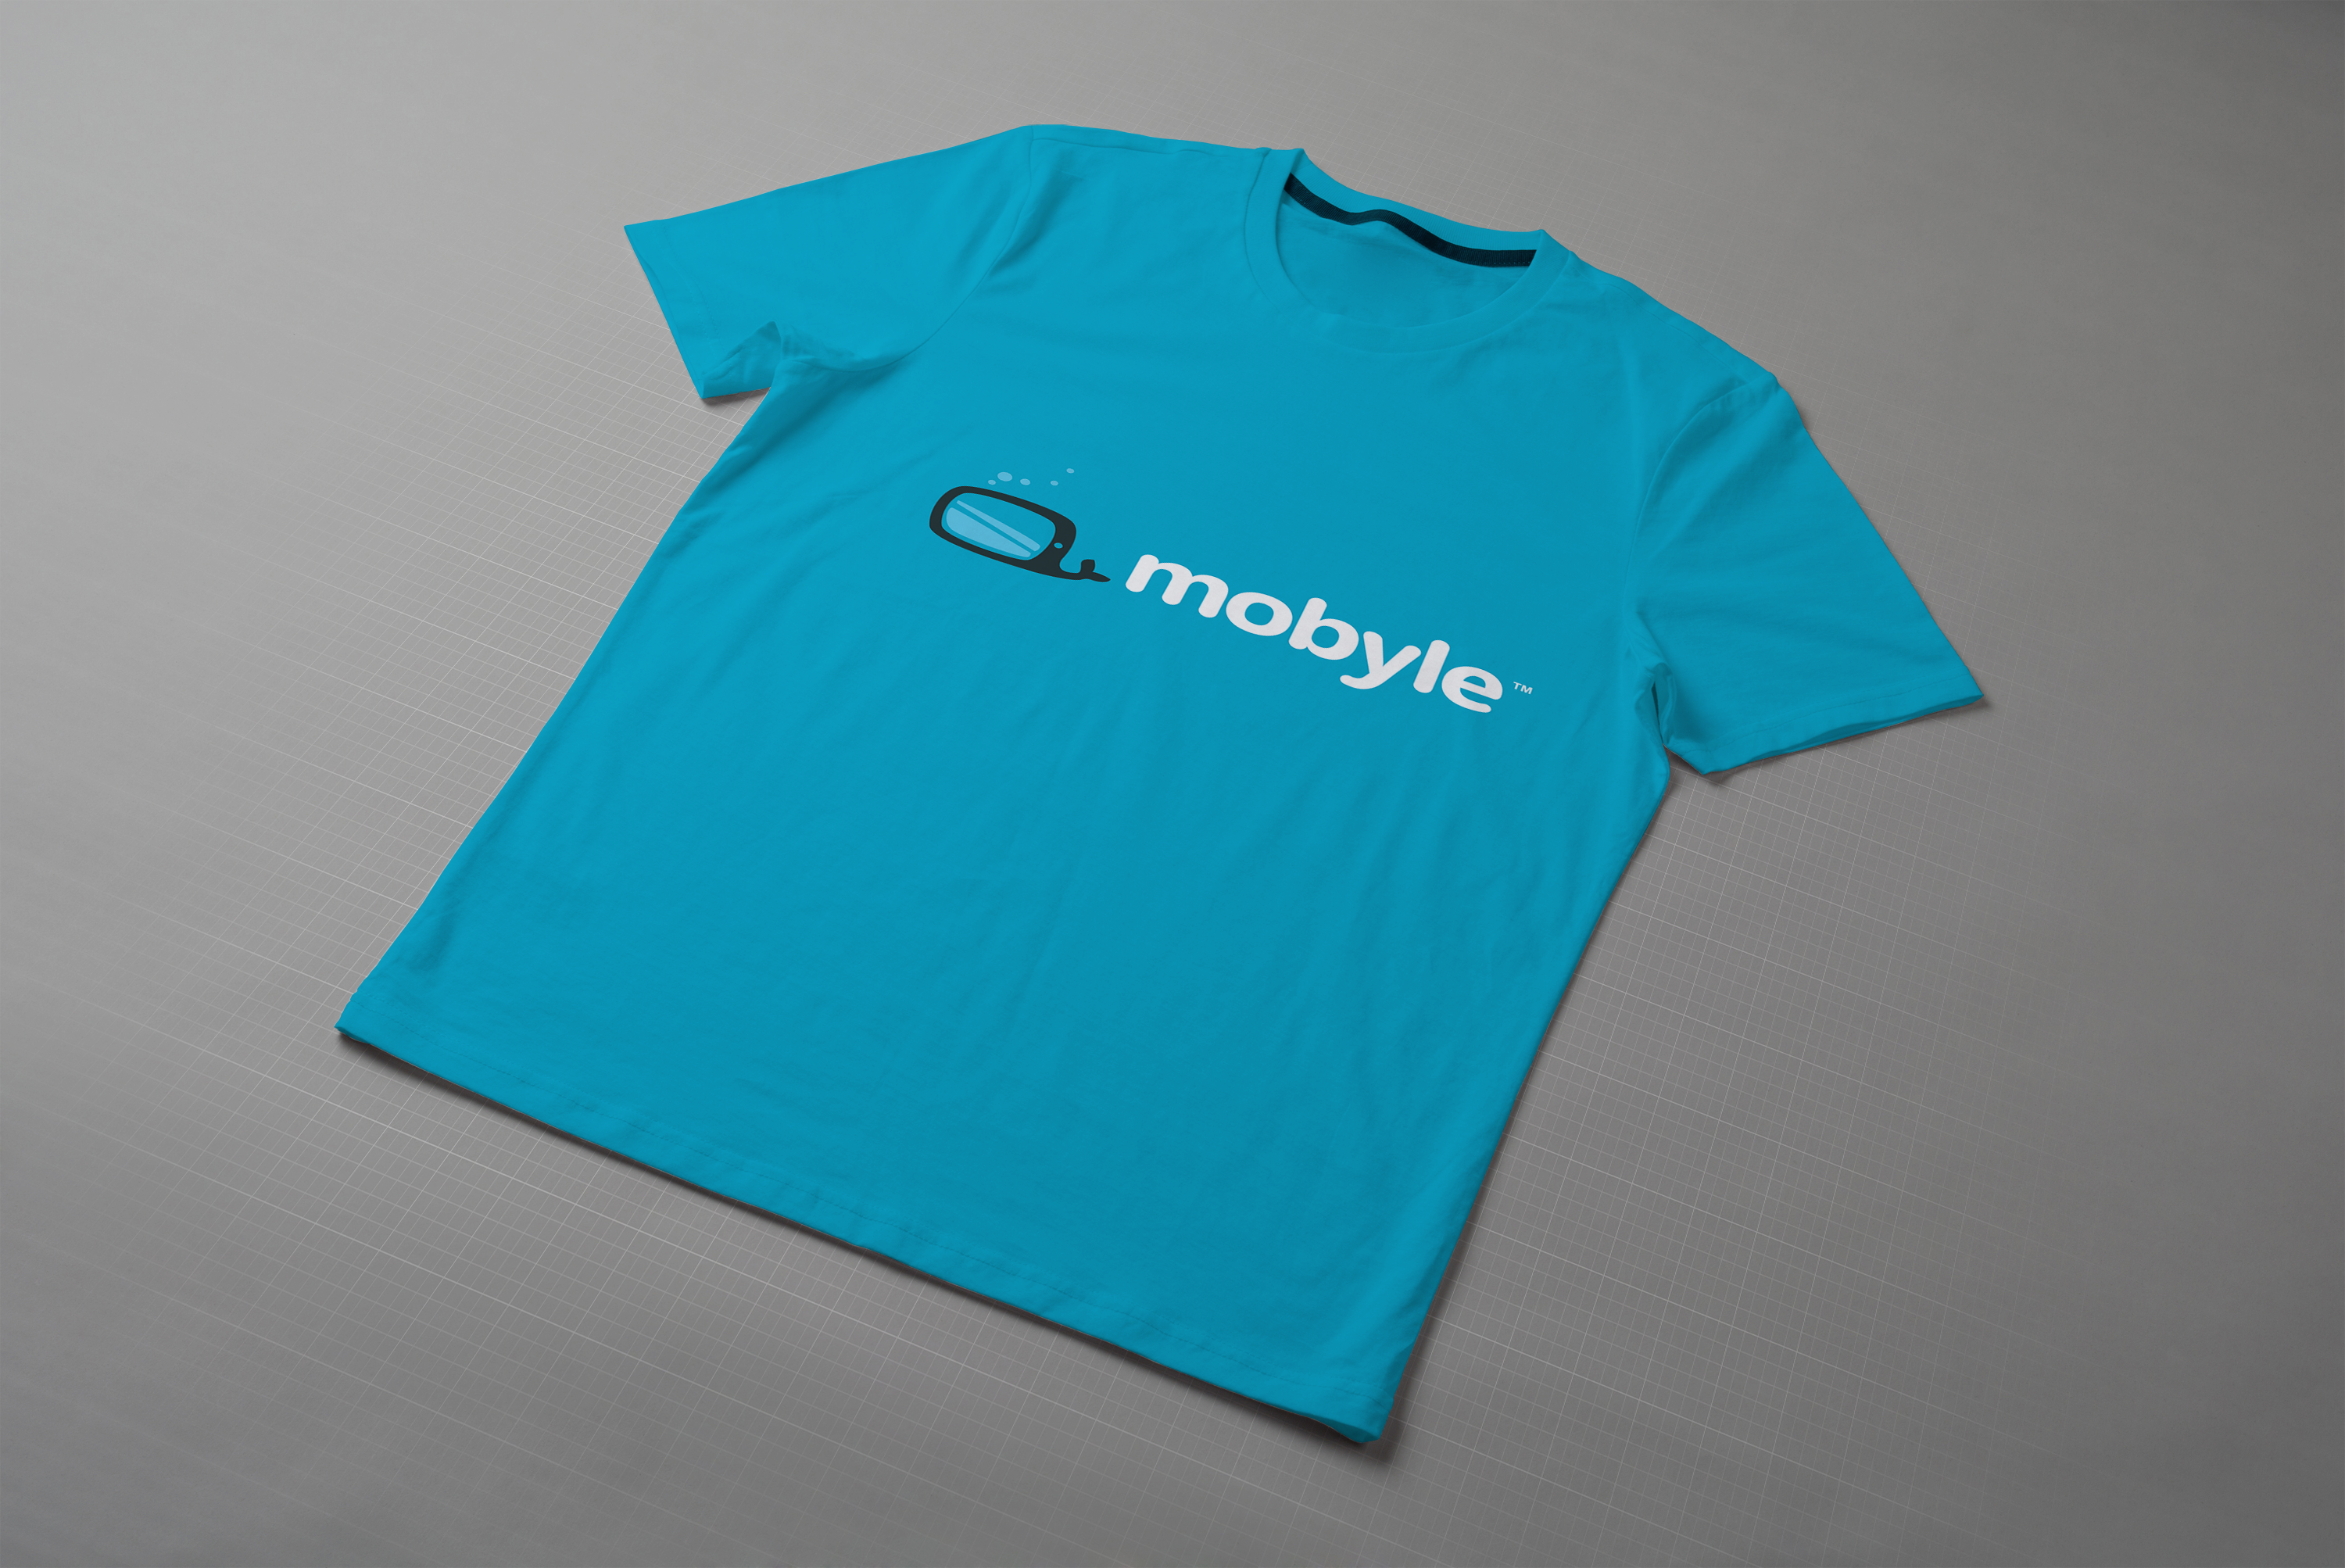 Mobyle_Shirt_1